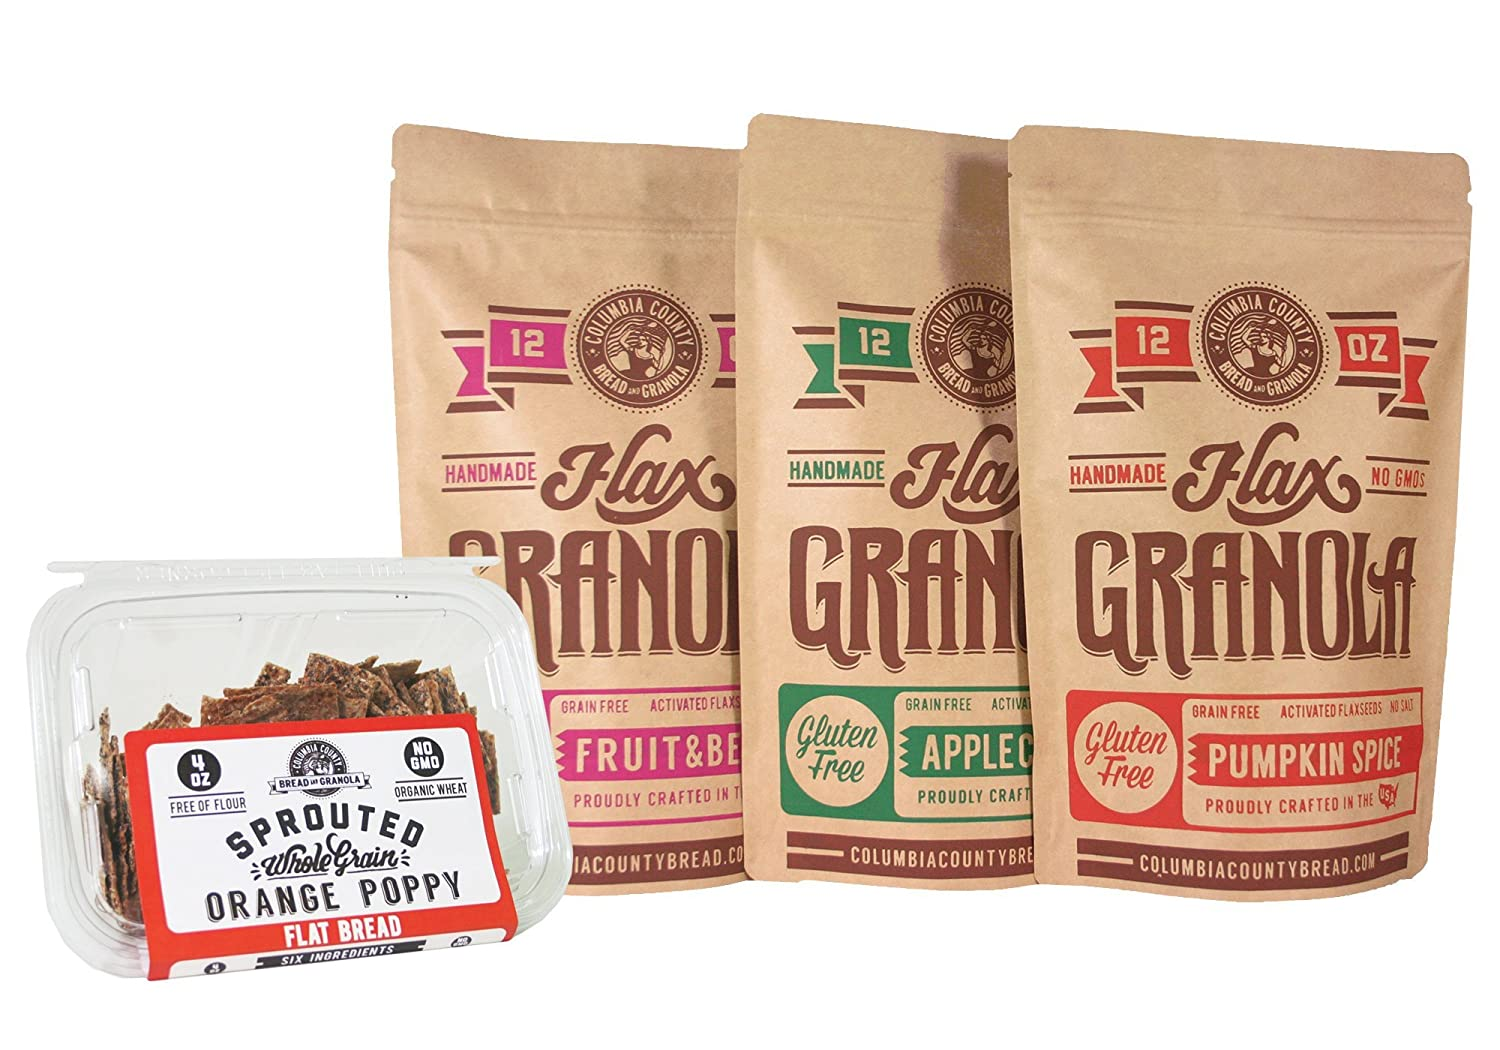 Flax Granola - Variety Pack: Fruit & Berry, Pumpkin Spice, and Apple Cinnamon - with 4 oz Orange Poppy seed Crisps - 12 oz, 3 pack